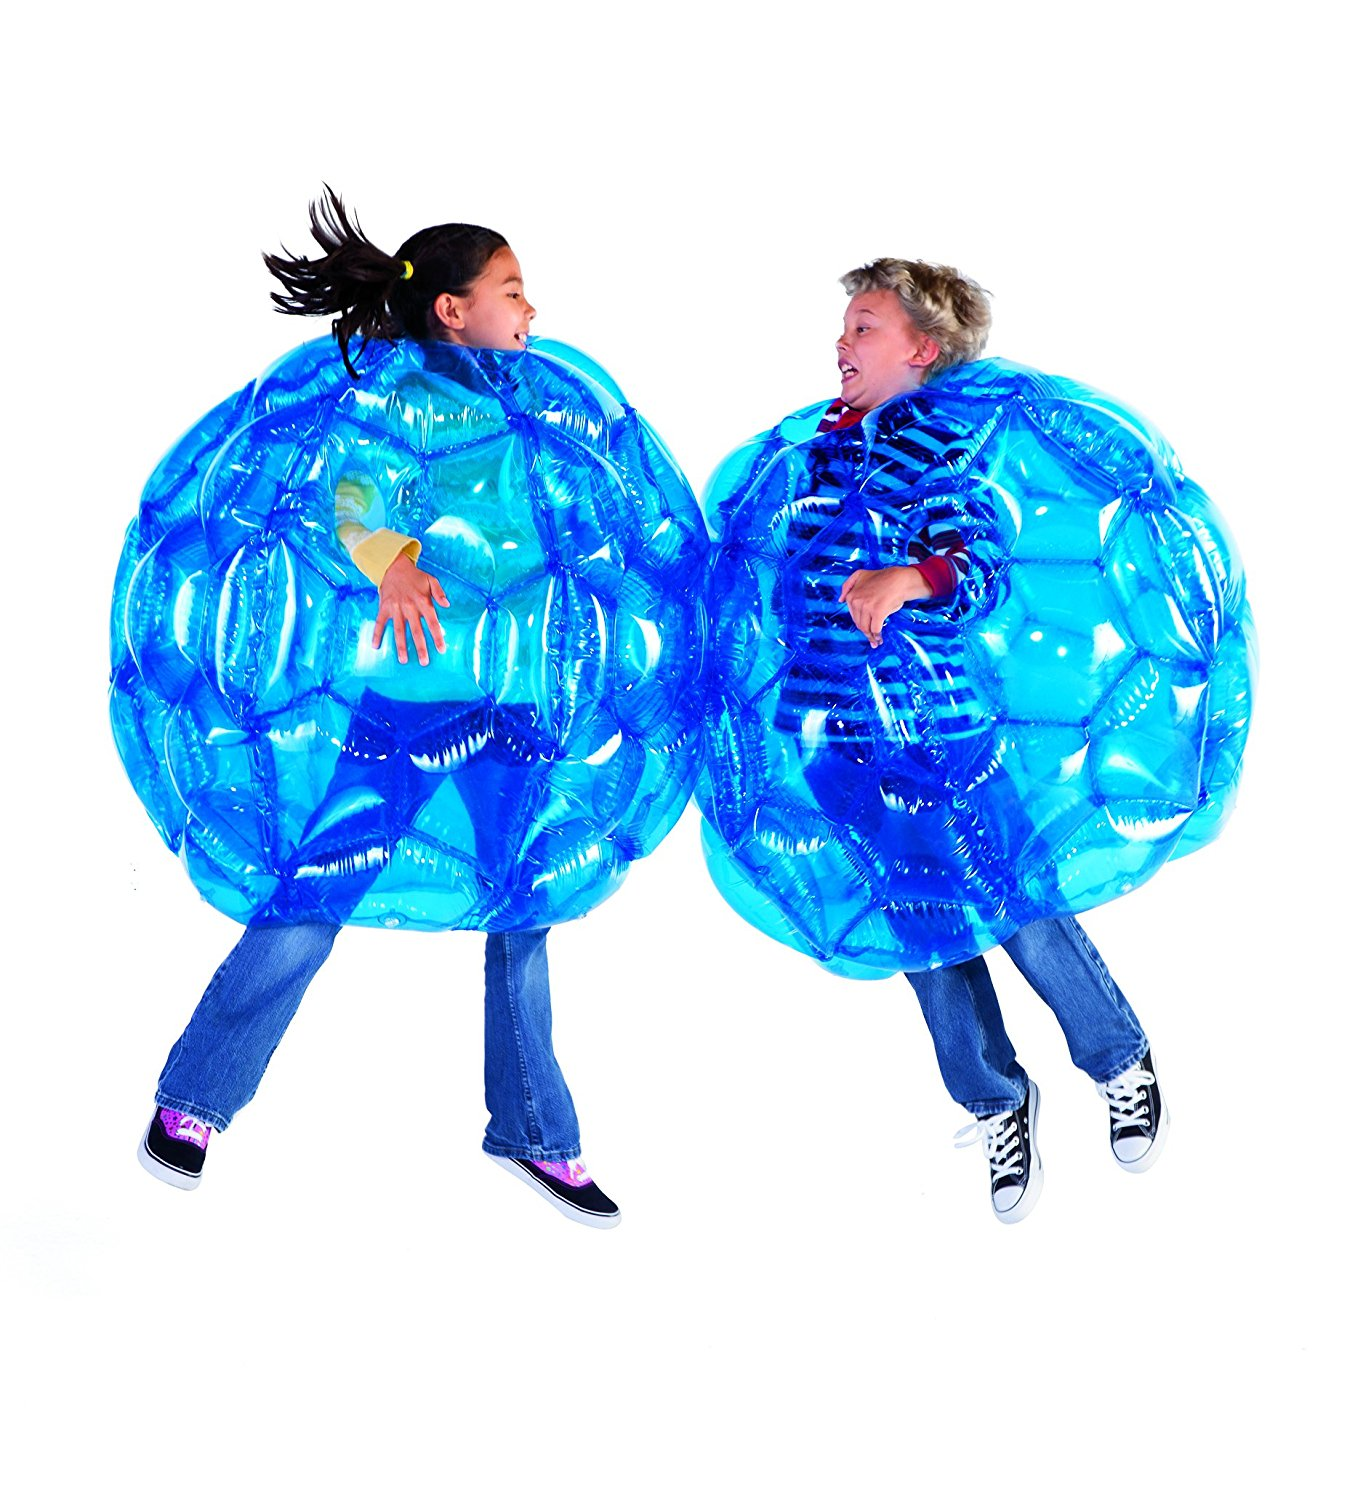 Top 10 Best Bubble Balls in 2019 Reviews